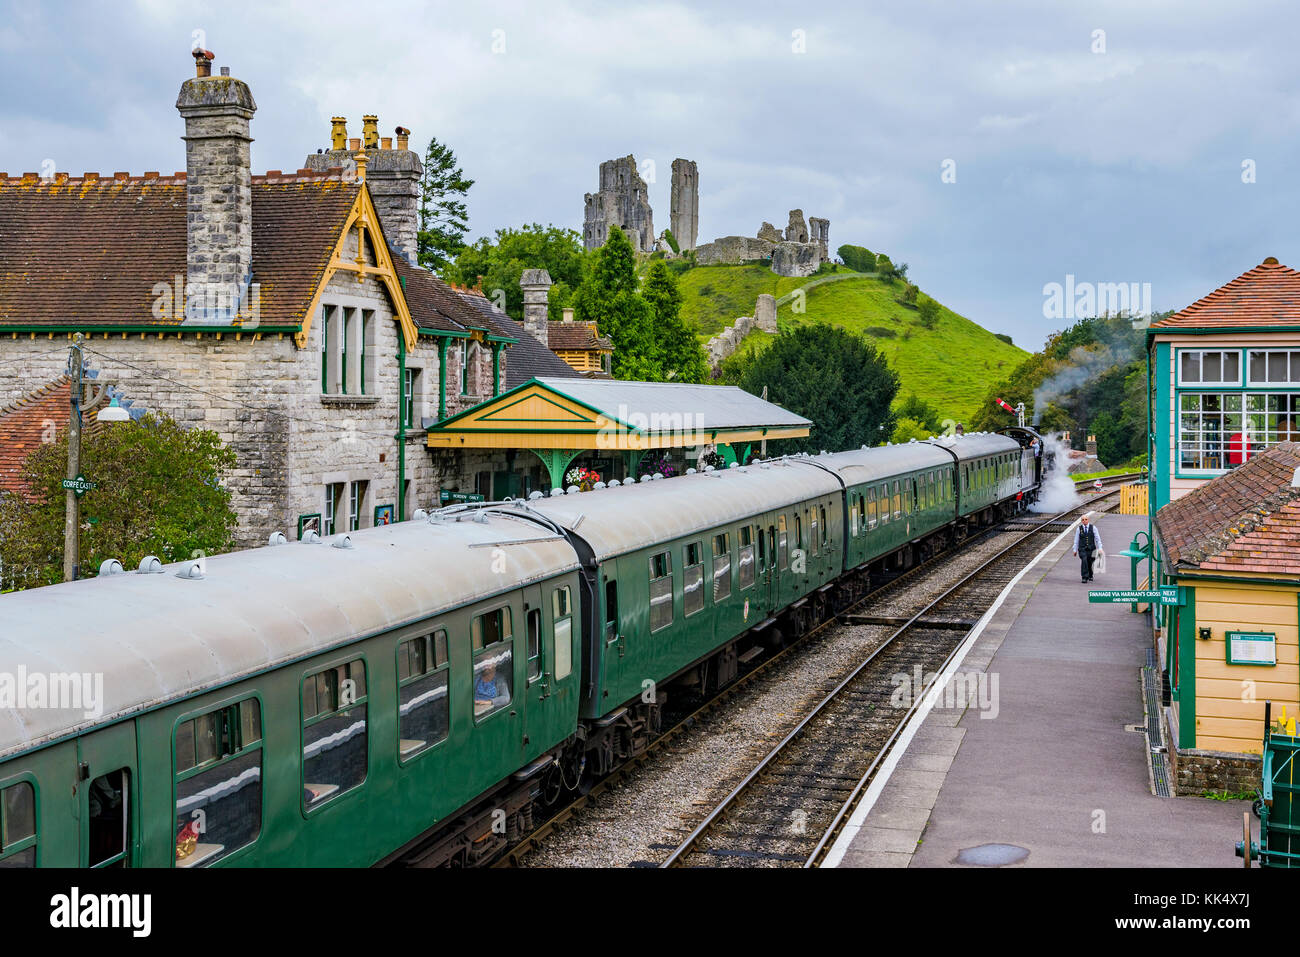 CORFE, UNITED KINGDOM - SEPTEMBER 06: This is a view of Corfe Castle railway station with an old steam train passing - Stock Image